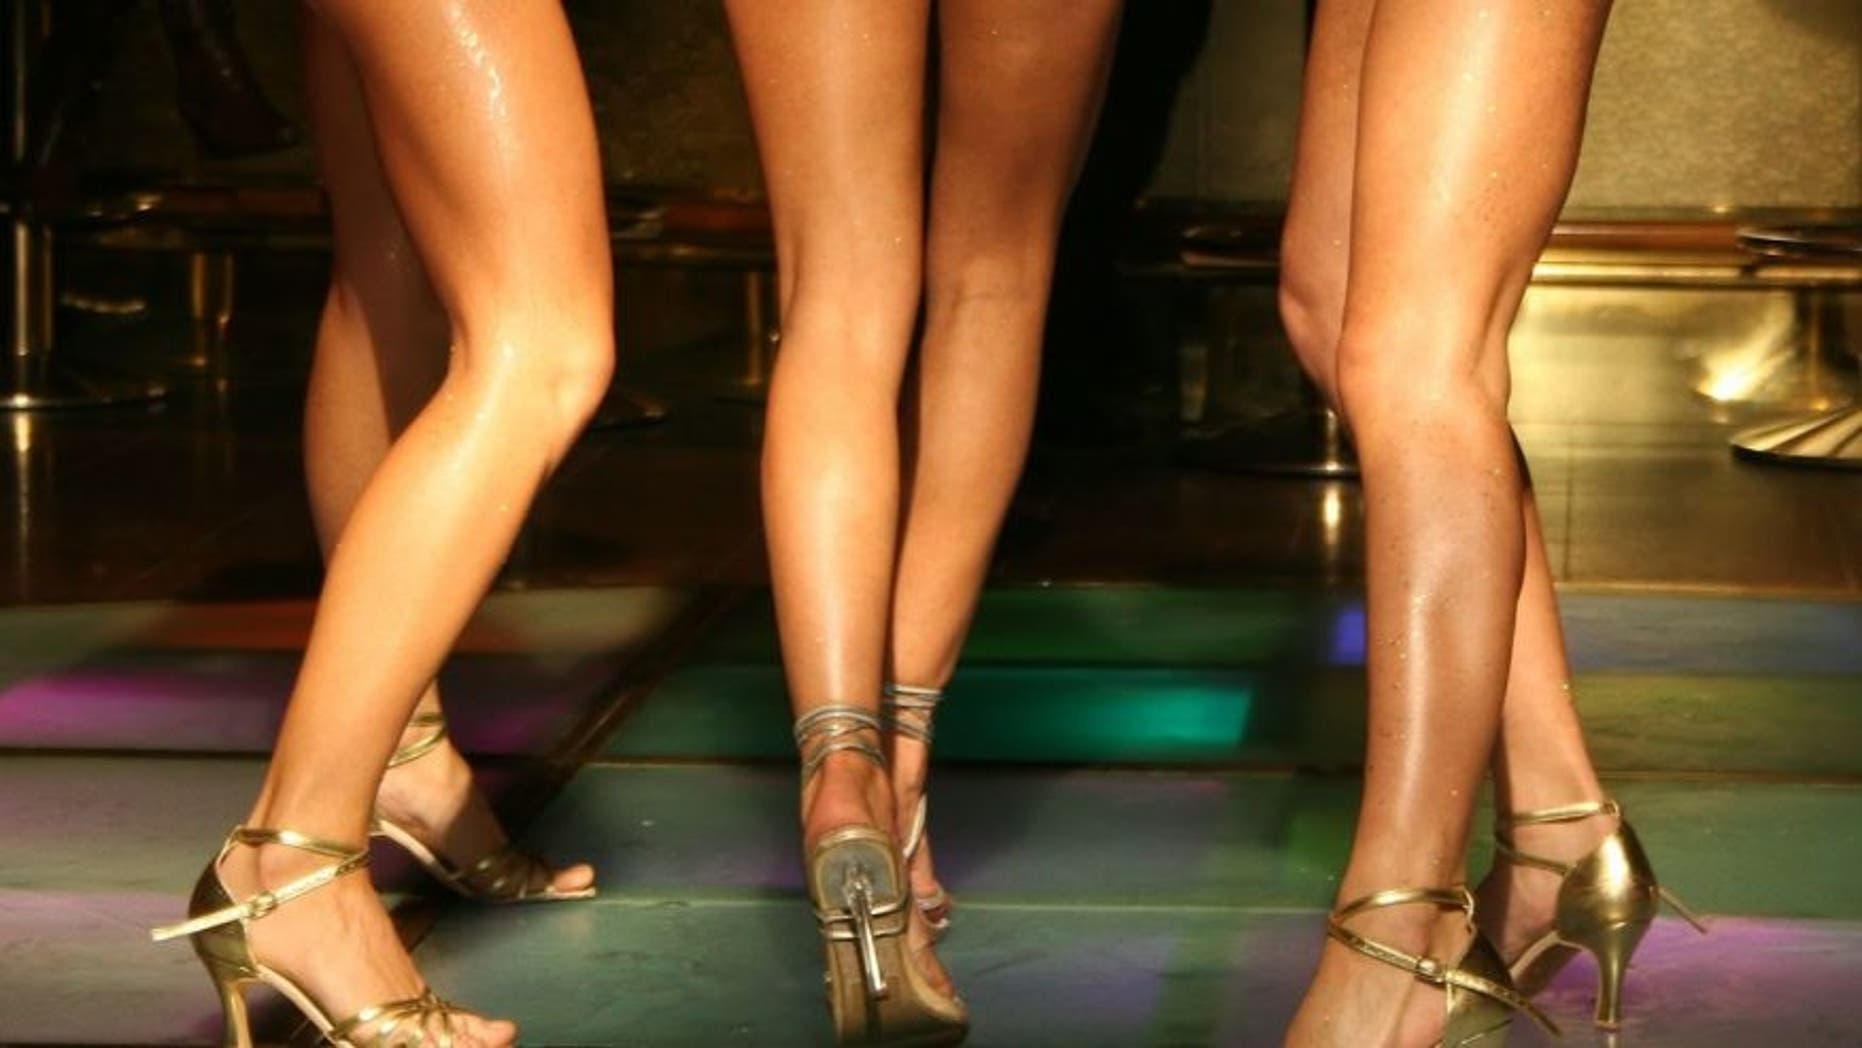 Strippers and strip club owners in San Diego are calling on city officials to lower their annual permit fees, claiming they are unjustified and much higher than in other cities.